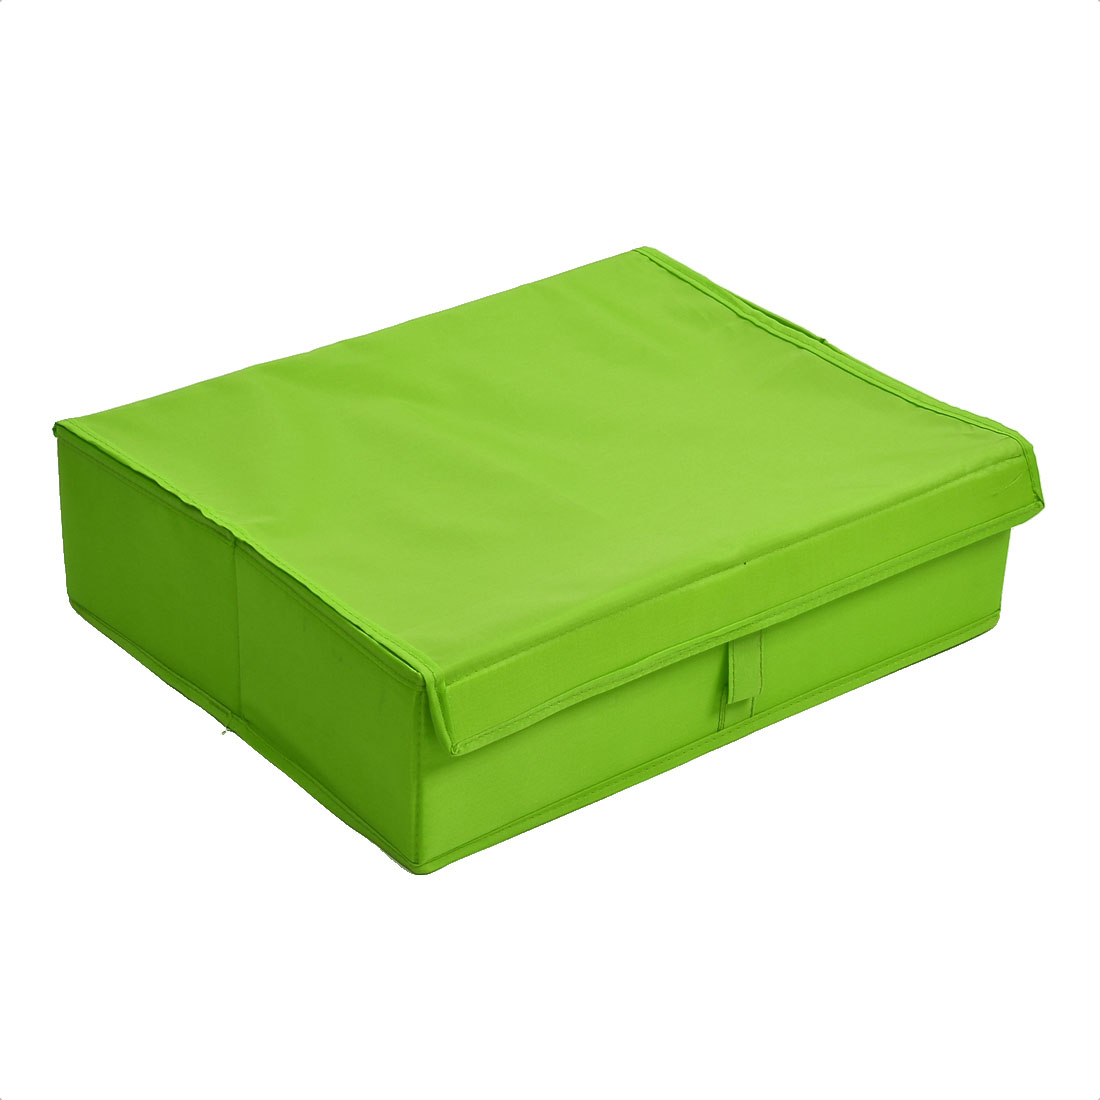 Home Household Socks Underwear Jewelry Clothes Storage Box Case Container Green